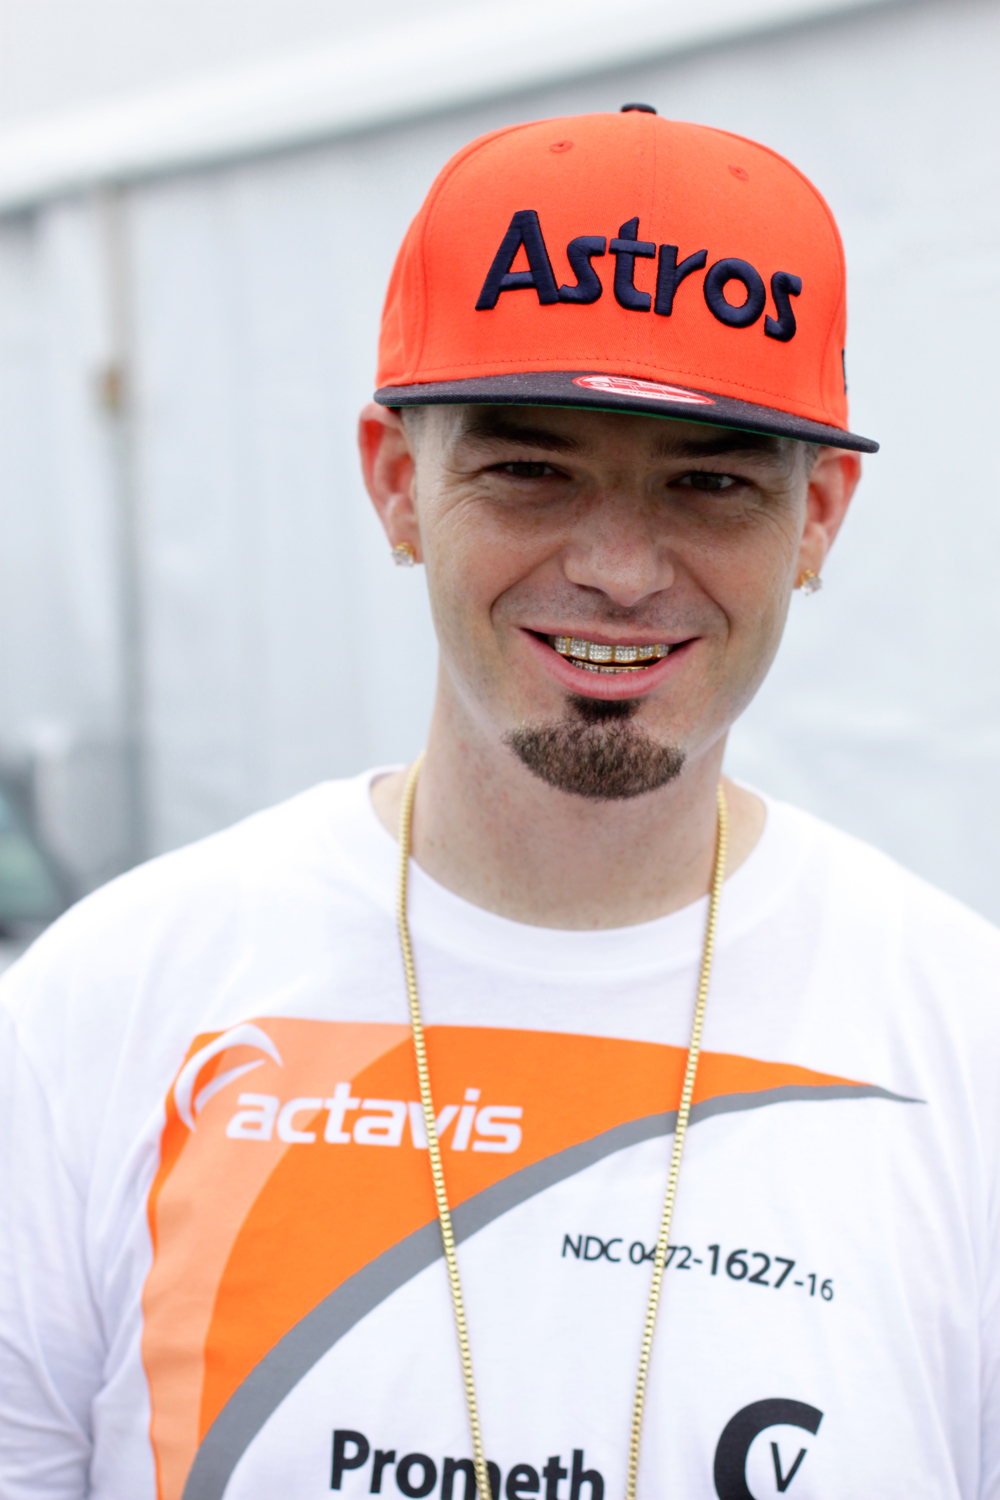 Paul Wall looking hot in an orange Houston Astros hat.jpg